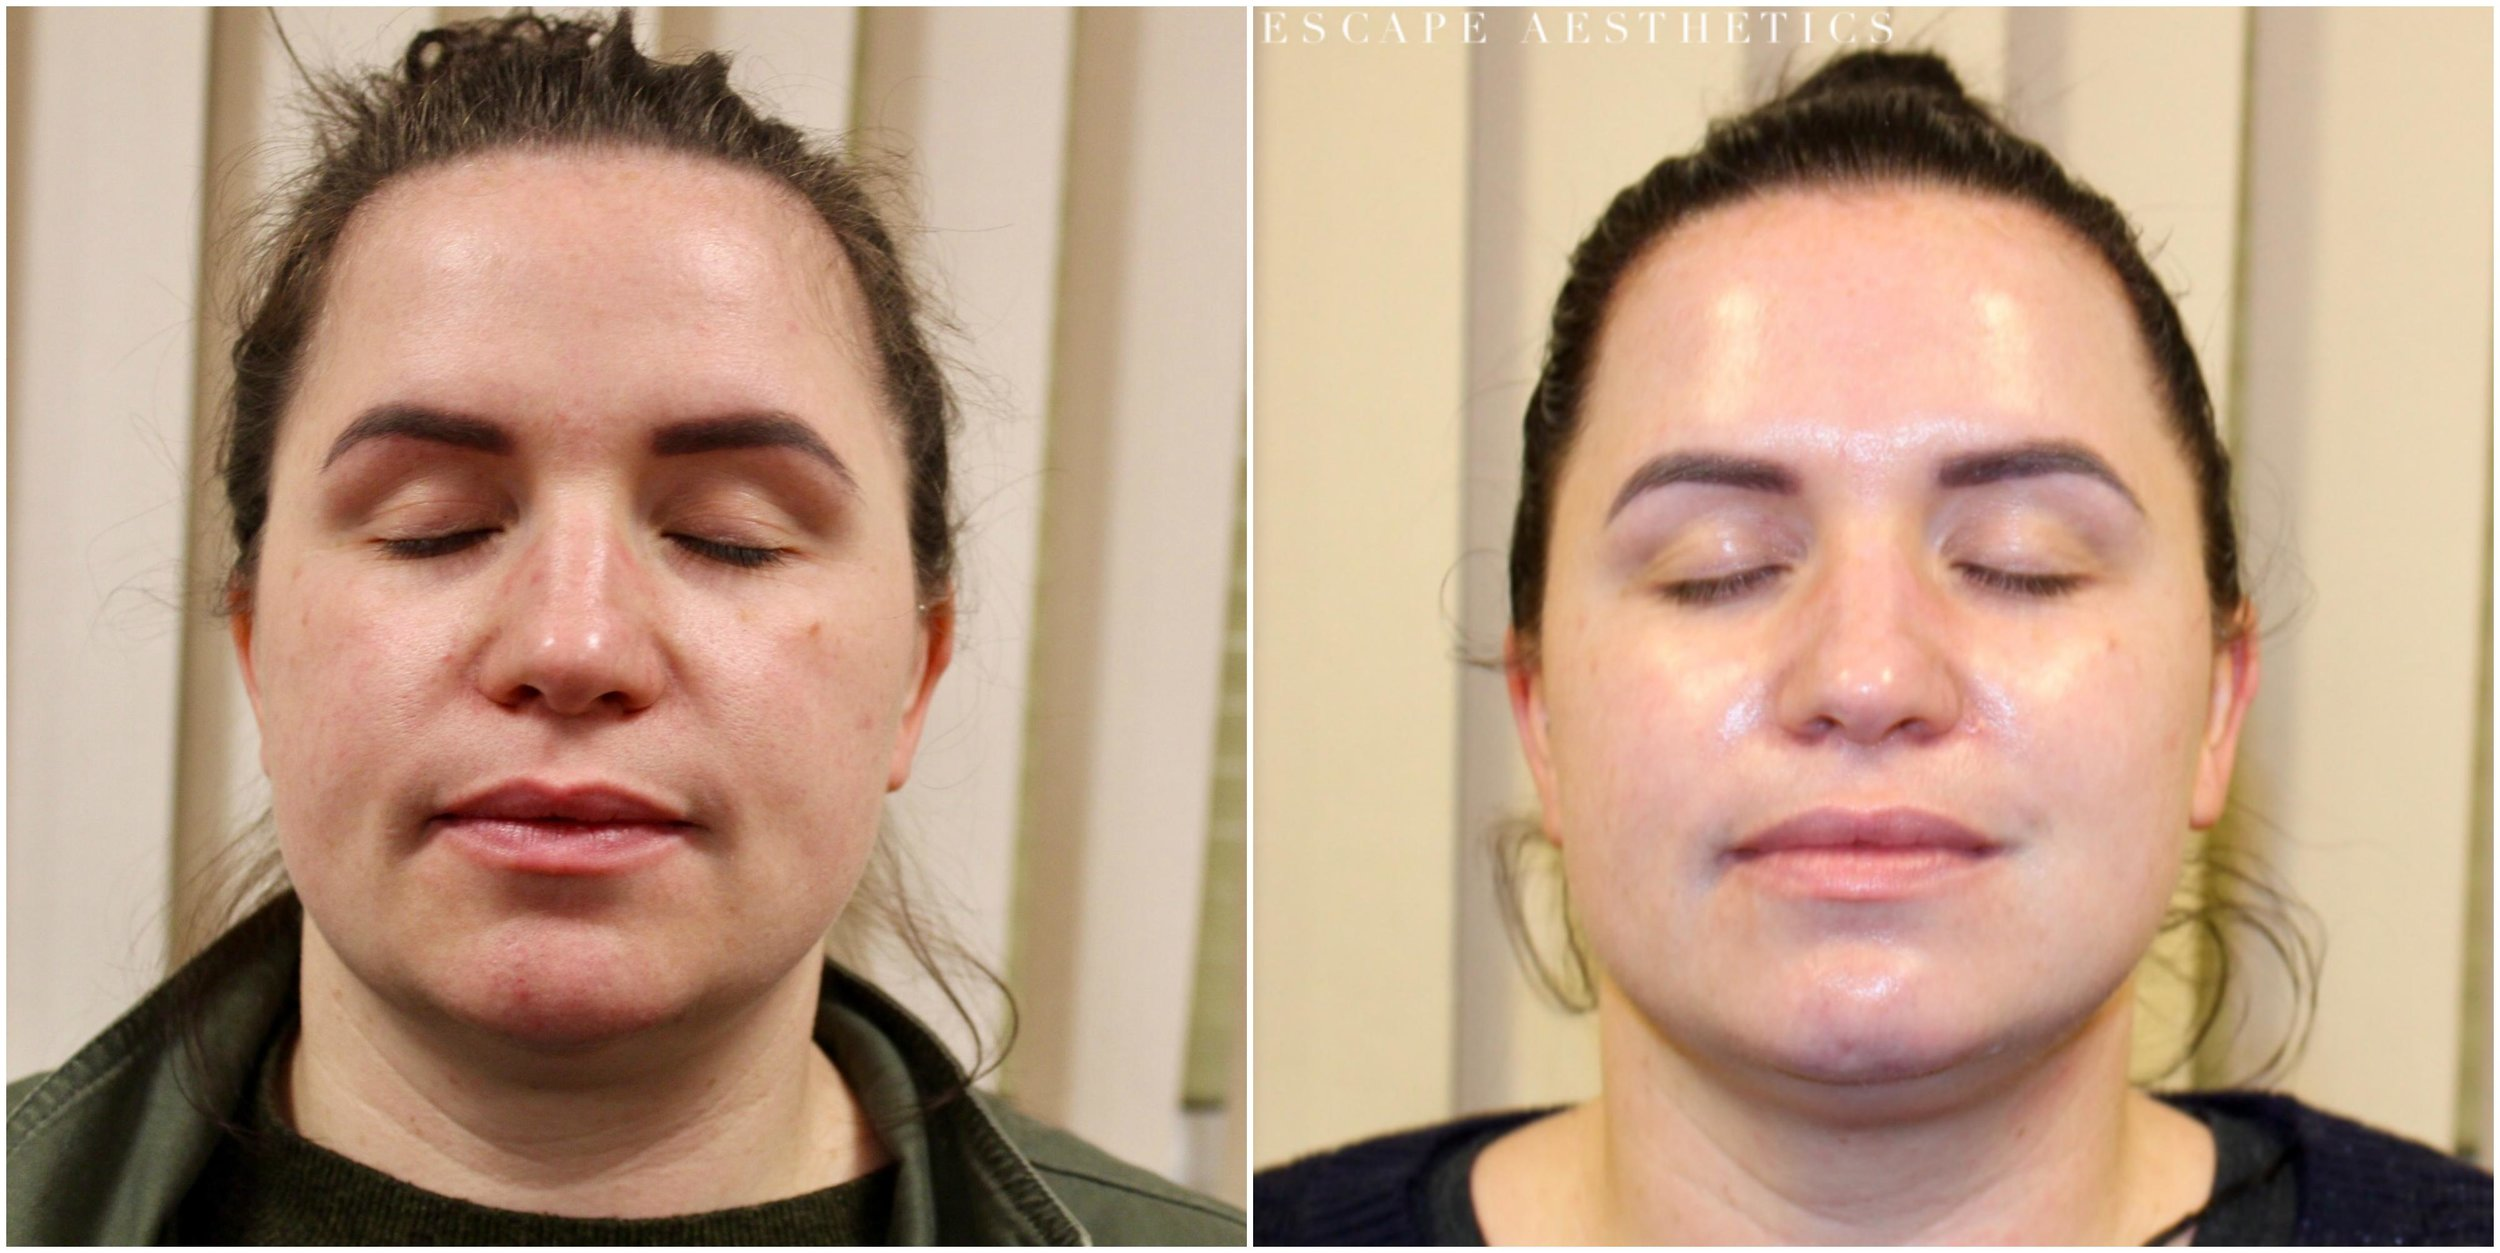 Chemical Peel Before and After, Escape Aesthetics